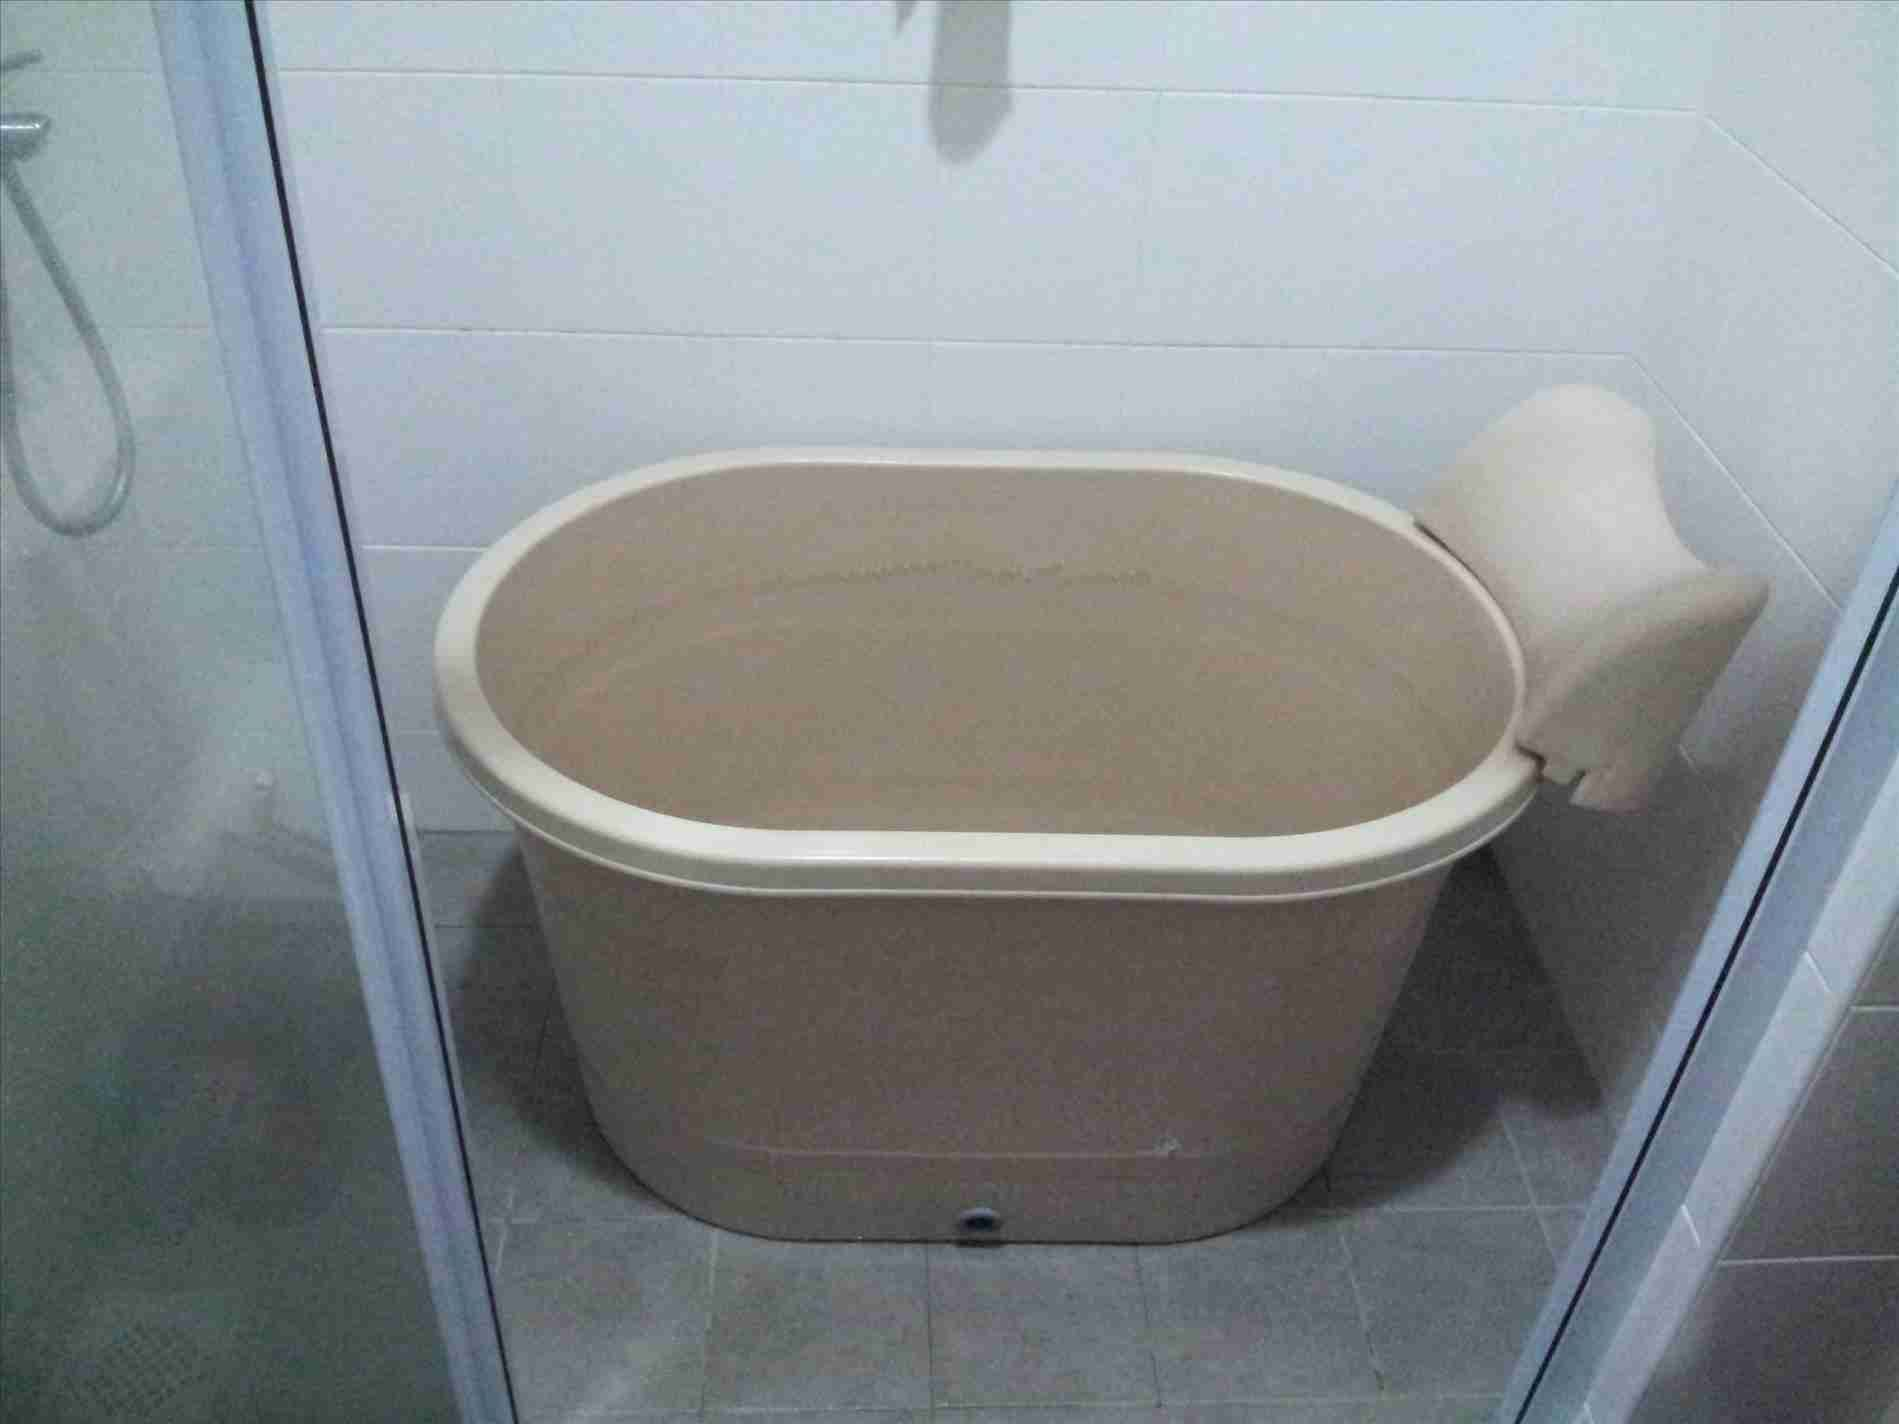 Portable Bathtub For Shower Stall • Bathtub Ideas